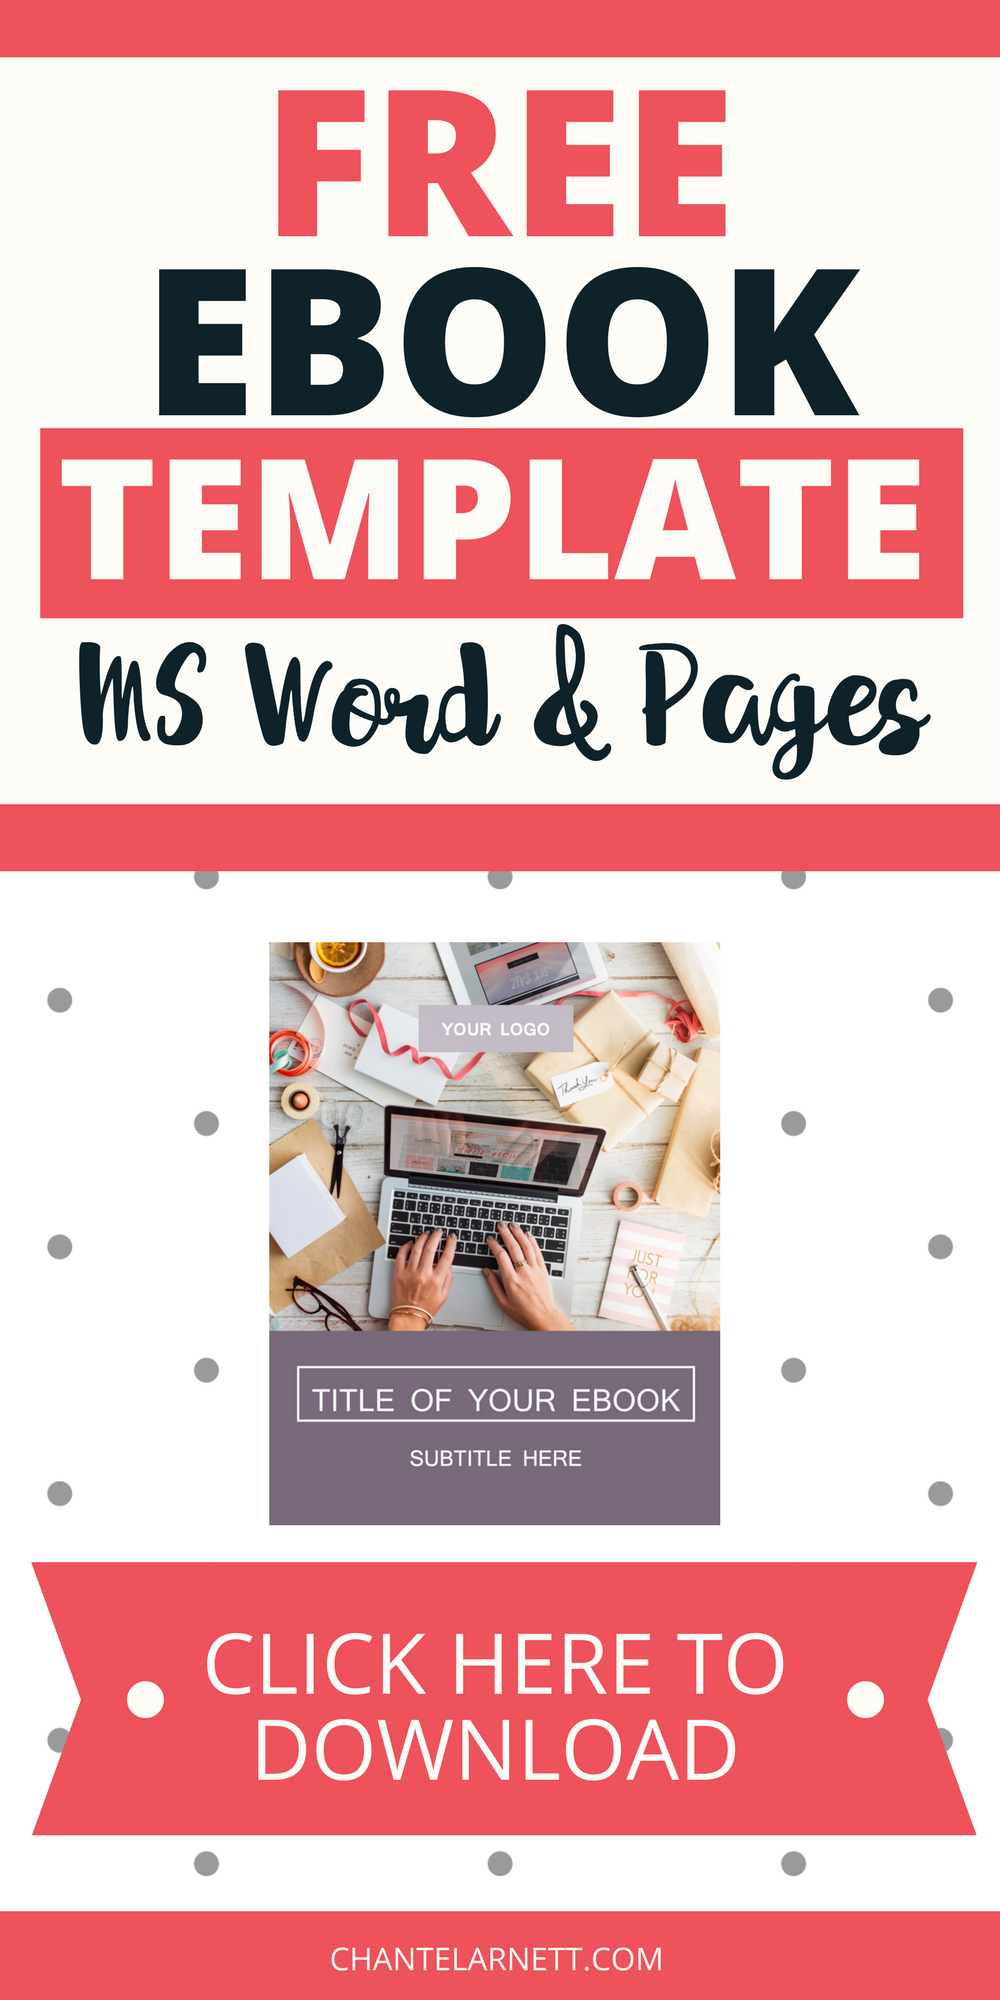 struggling with your ebook template design download these free ebook templates for ms word and - Free Ebook Templates